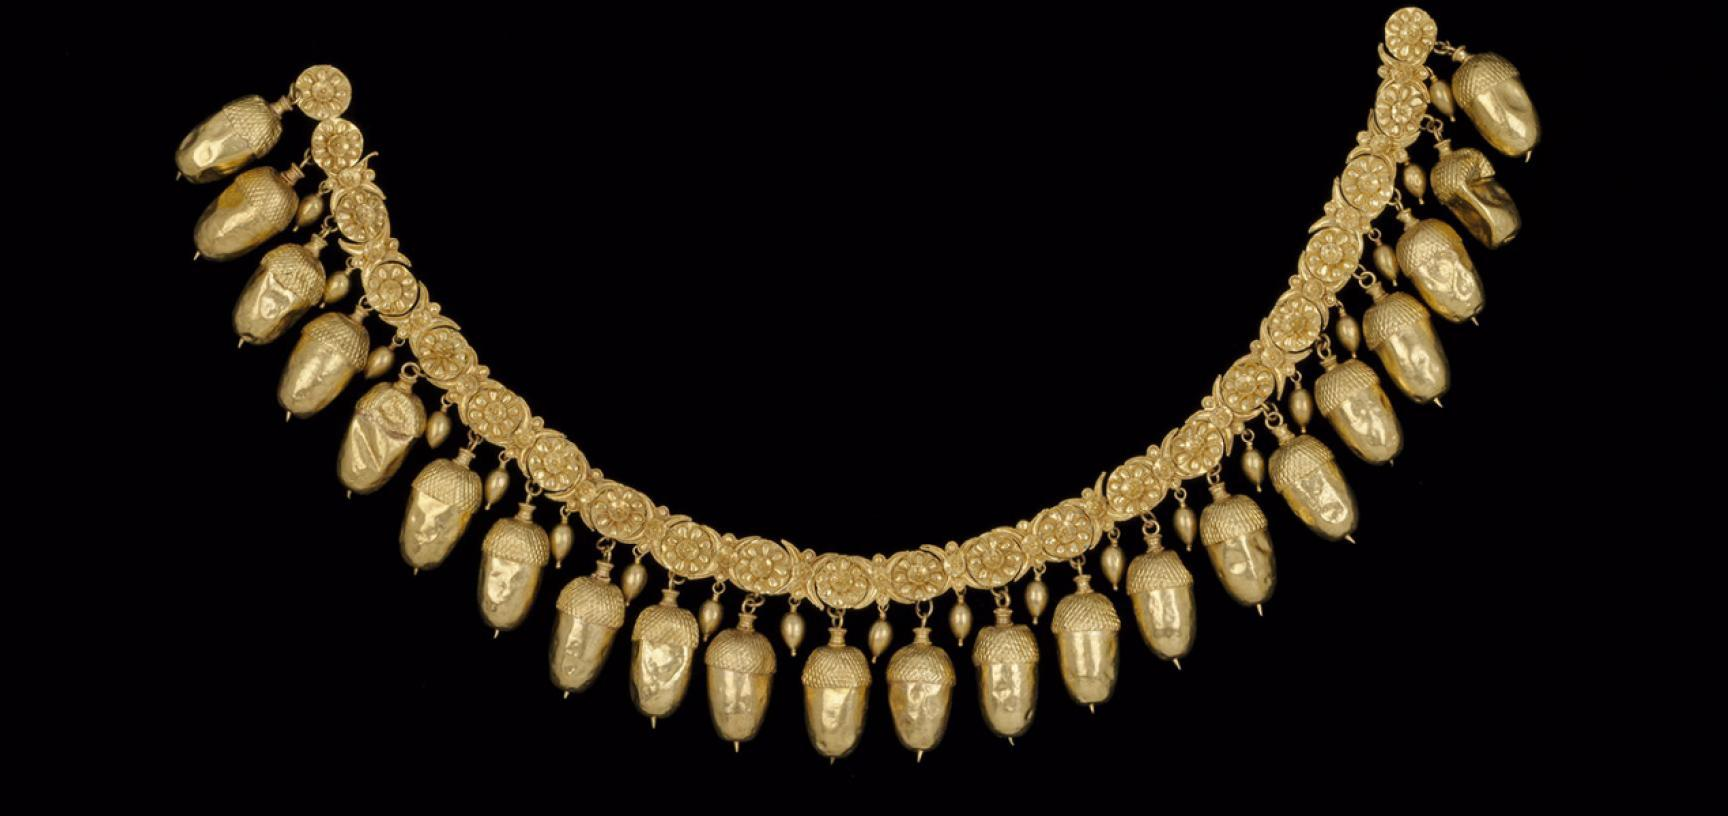 Gold necklace of acorns, lotuses and rosettes, Greek, 5th century BC